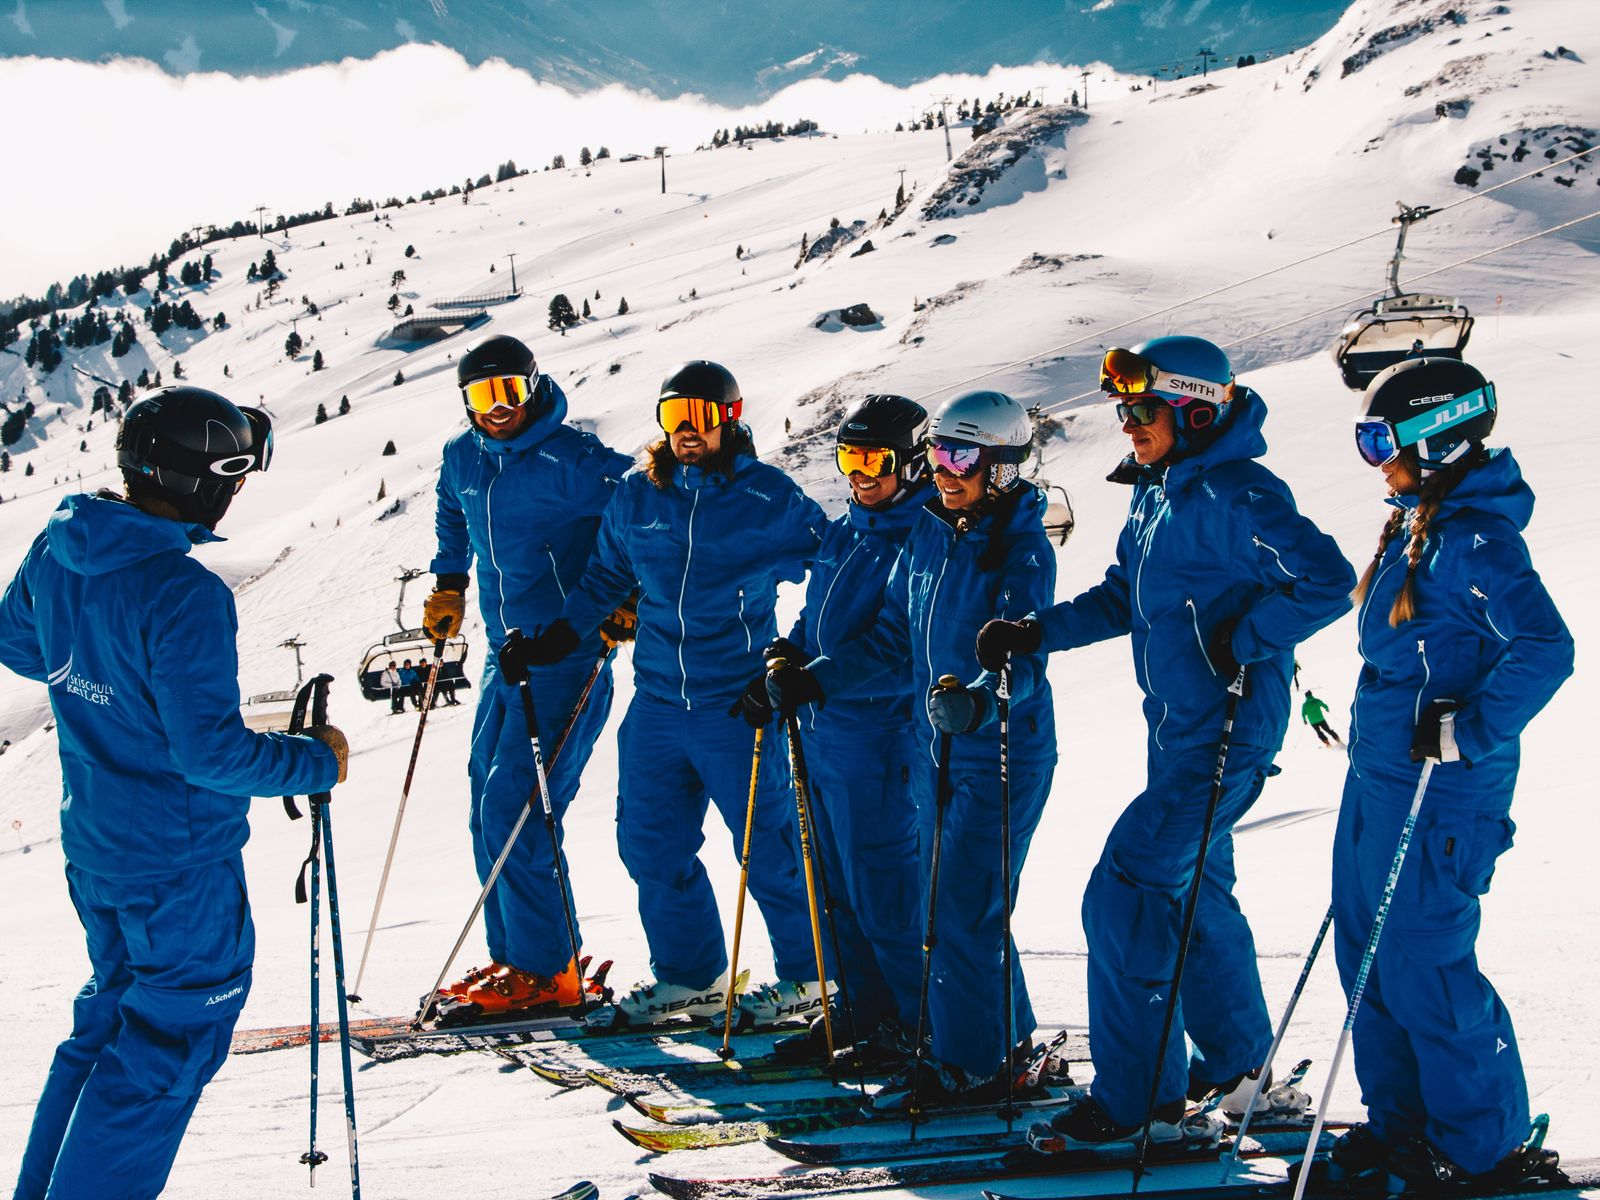 Ski instructors of Skischule Keiler in the Zillertal